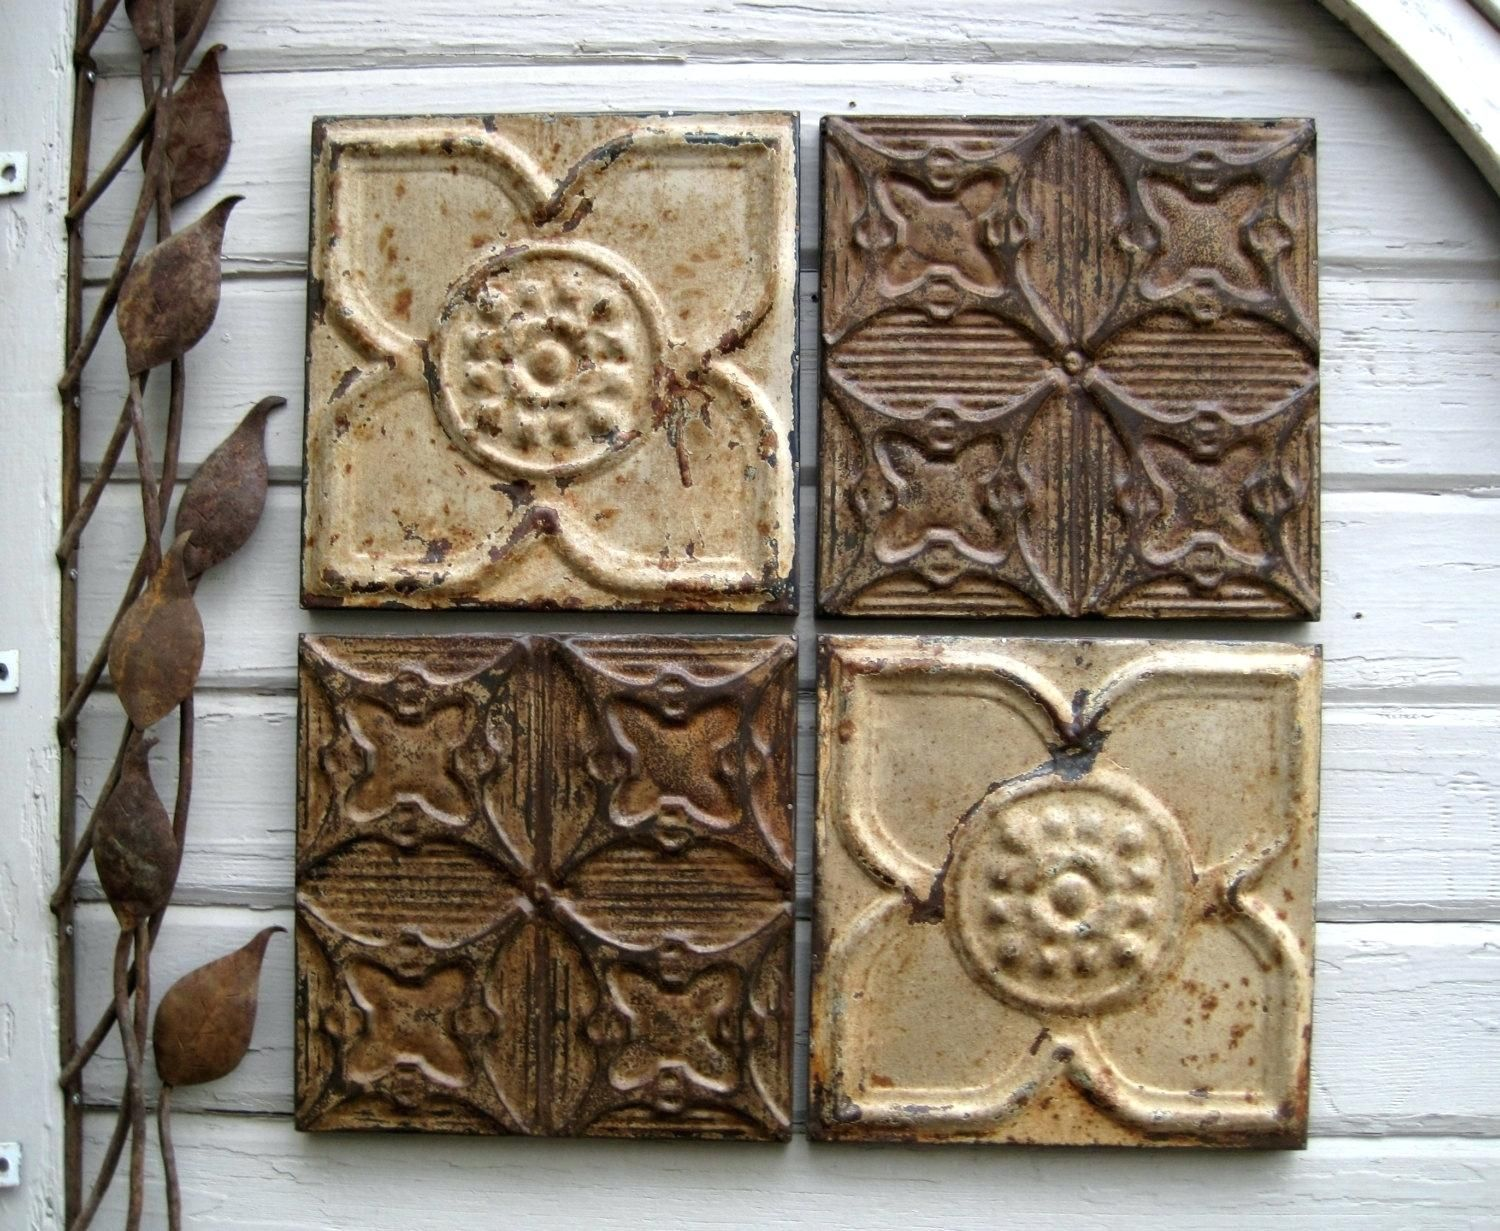 Antique ceiling tiles wall decor httpcreativechairsandtables antique ceiling tiles wall decor dailygadgetfo Image collections